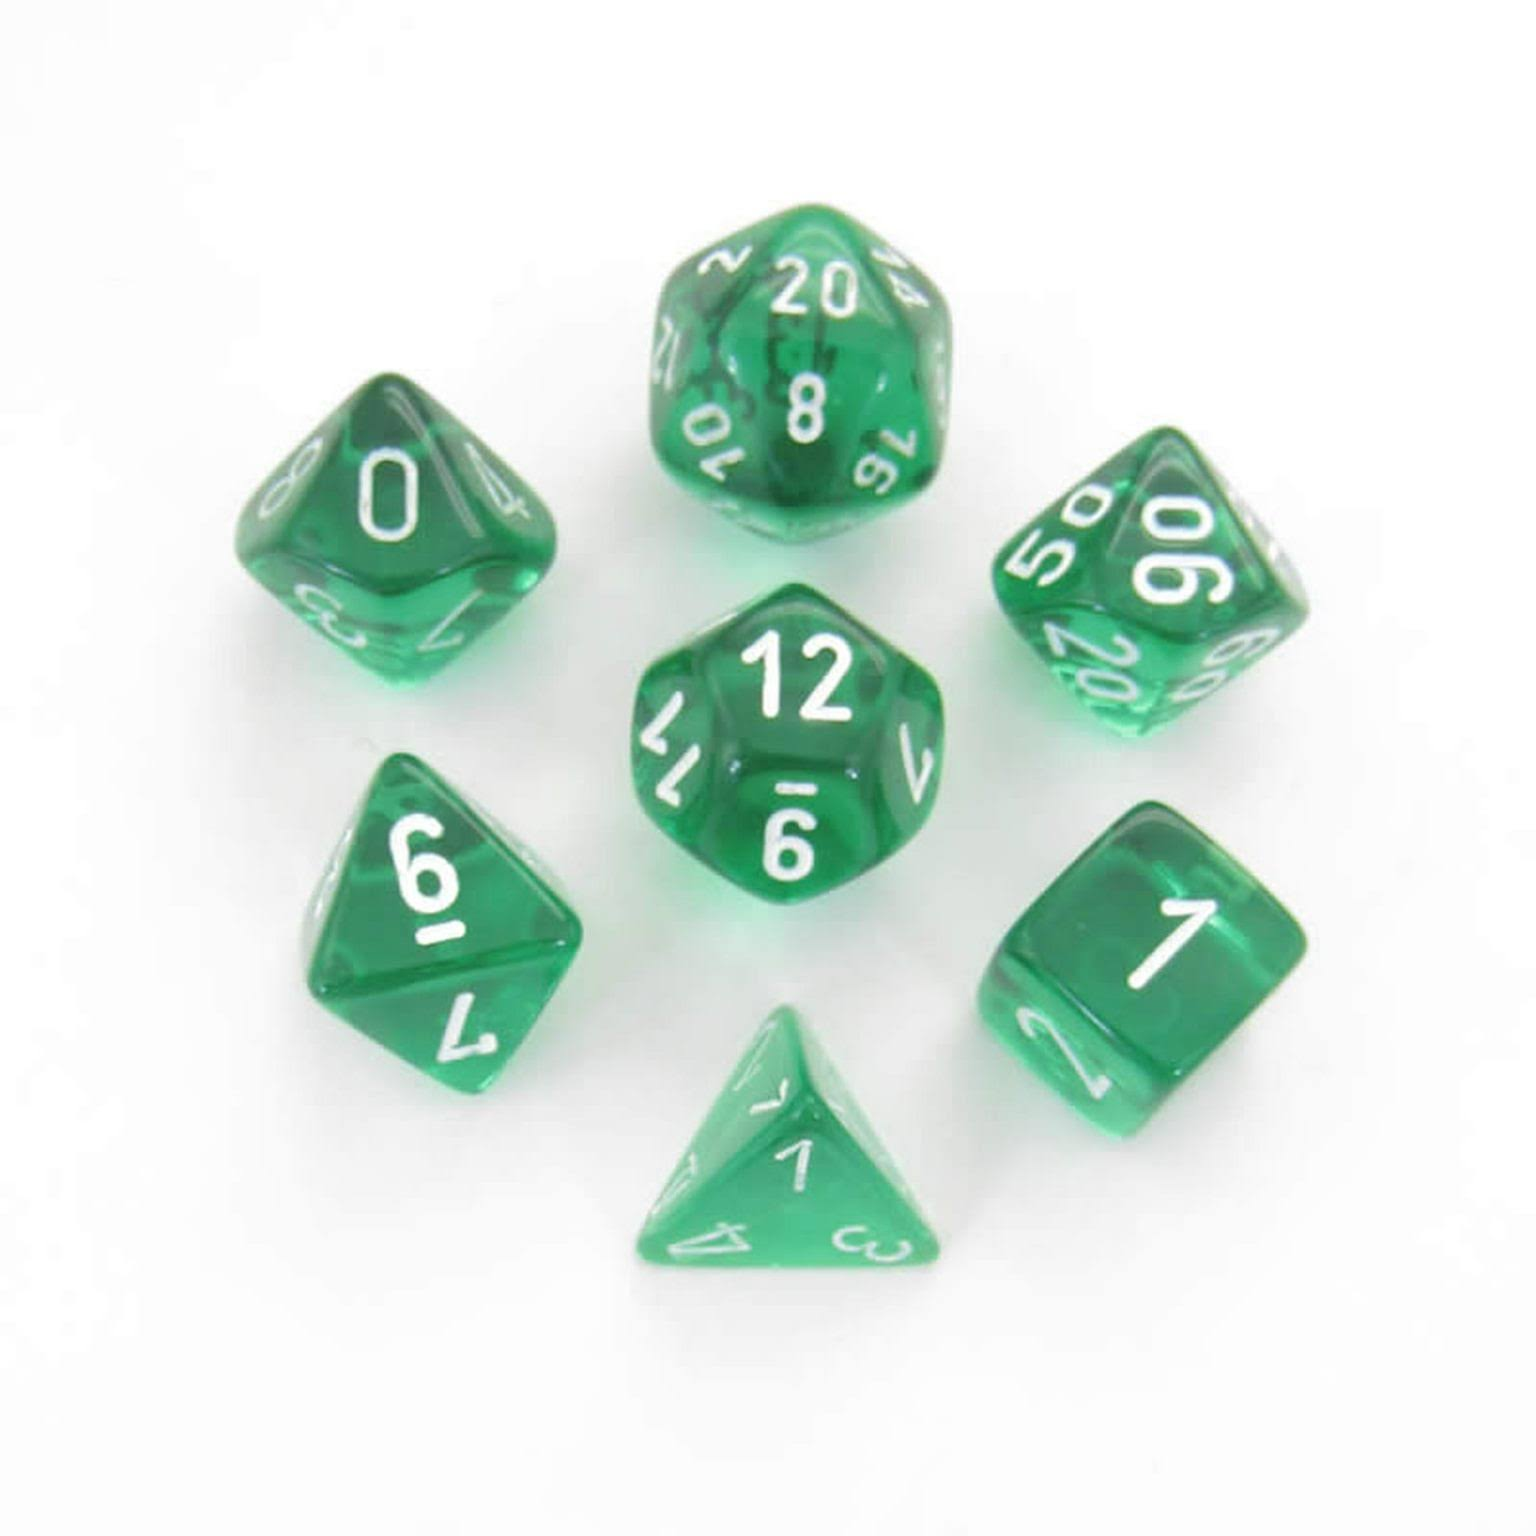 Chessex - Translucent Polyhedral Green/White 7-Die Set